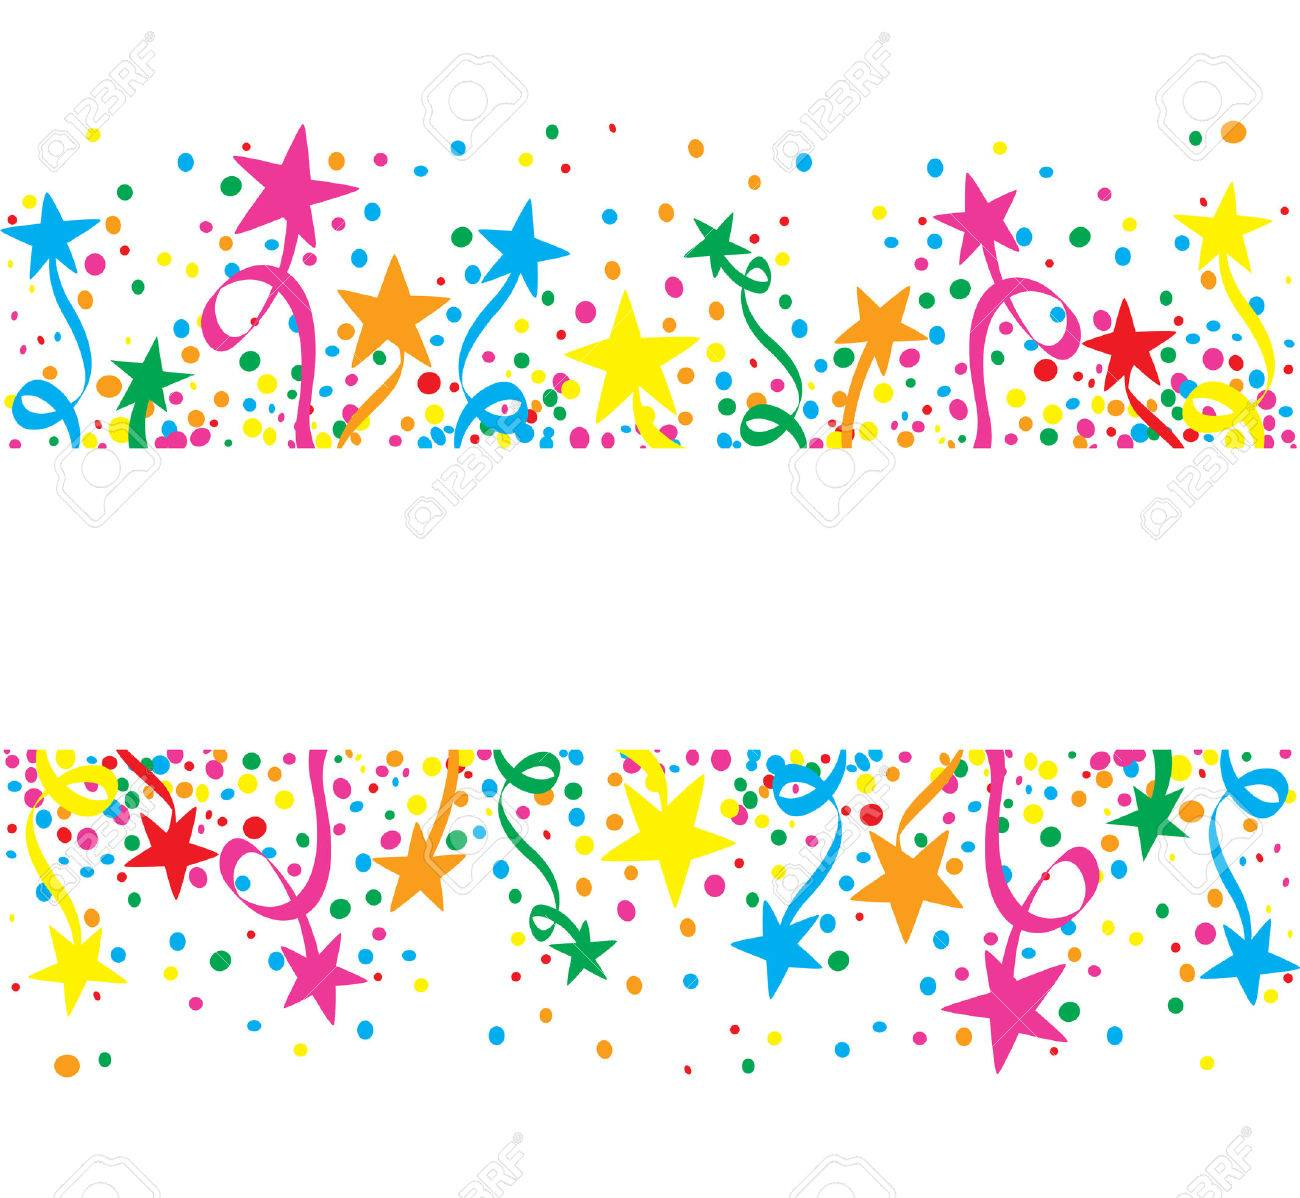 Big colorful background stars at day - 49219870